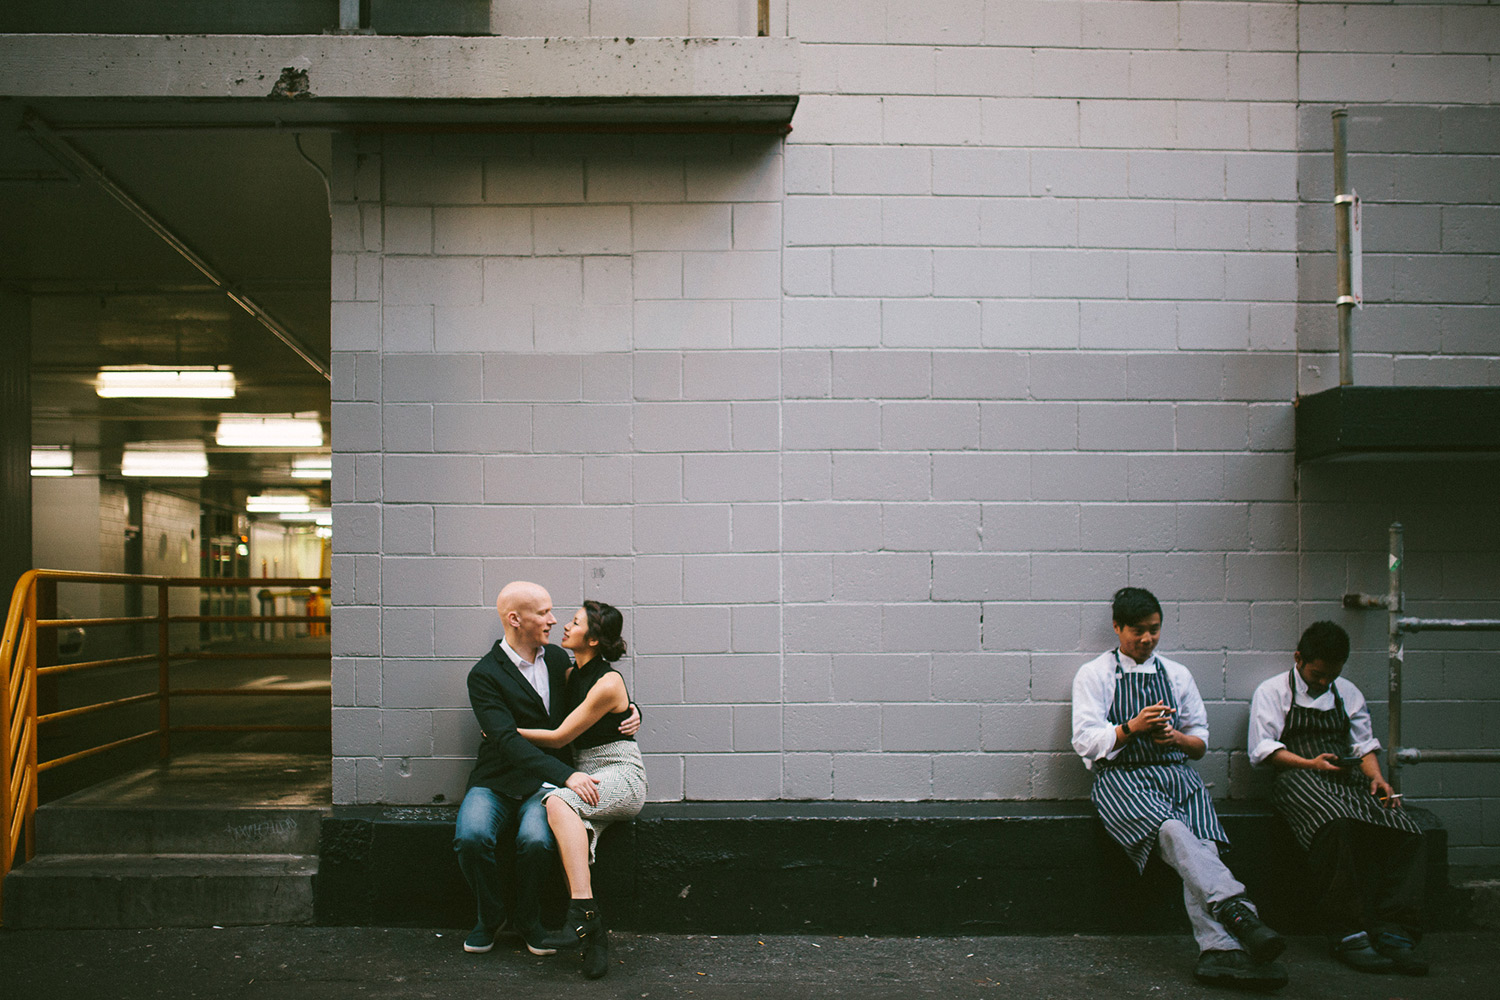 Elaine-Stephen-Engagement-Melbourne-Quirky-Urban-Engagement-Session-Wedding-Photography-9